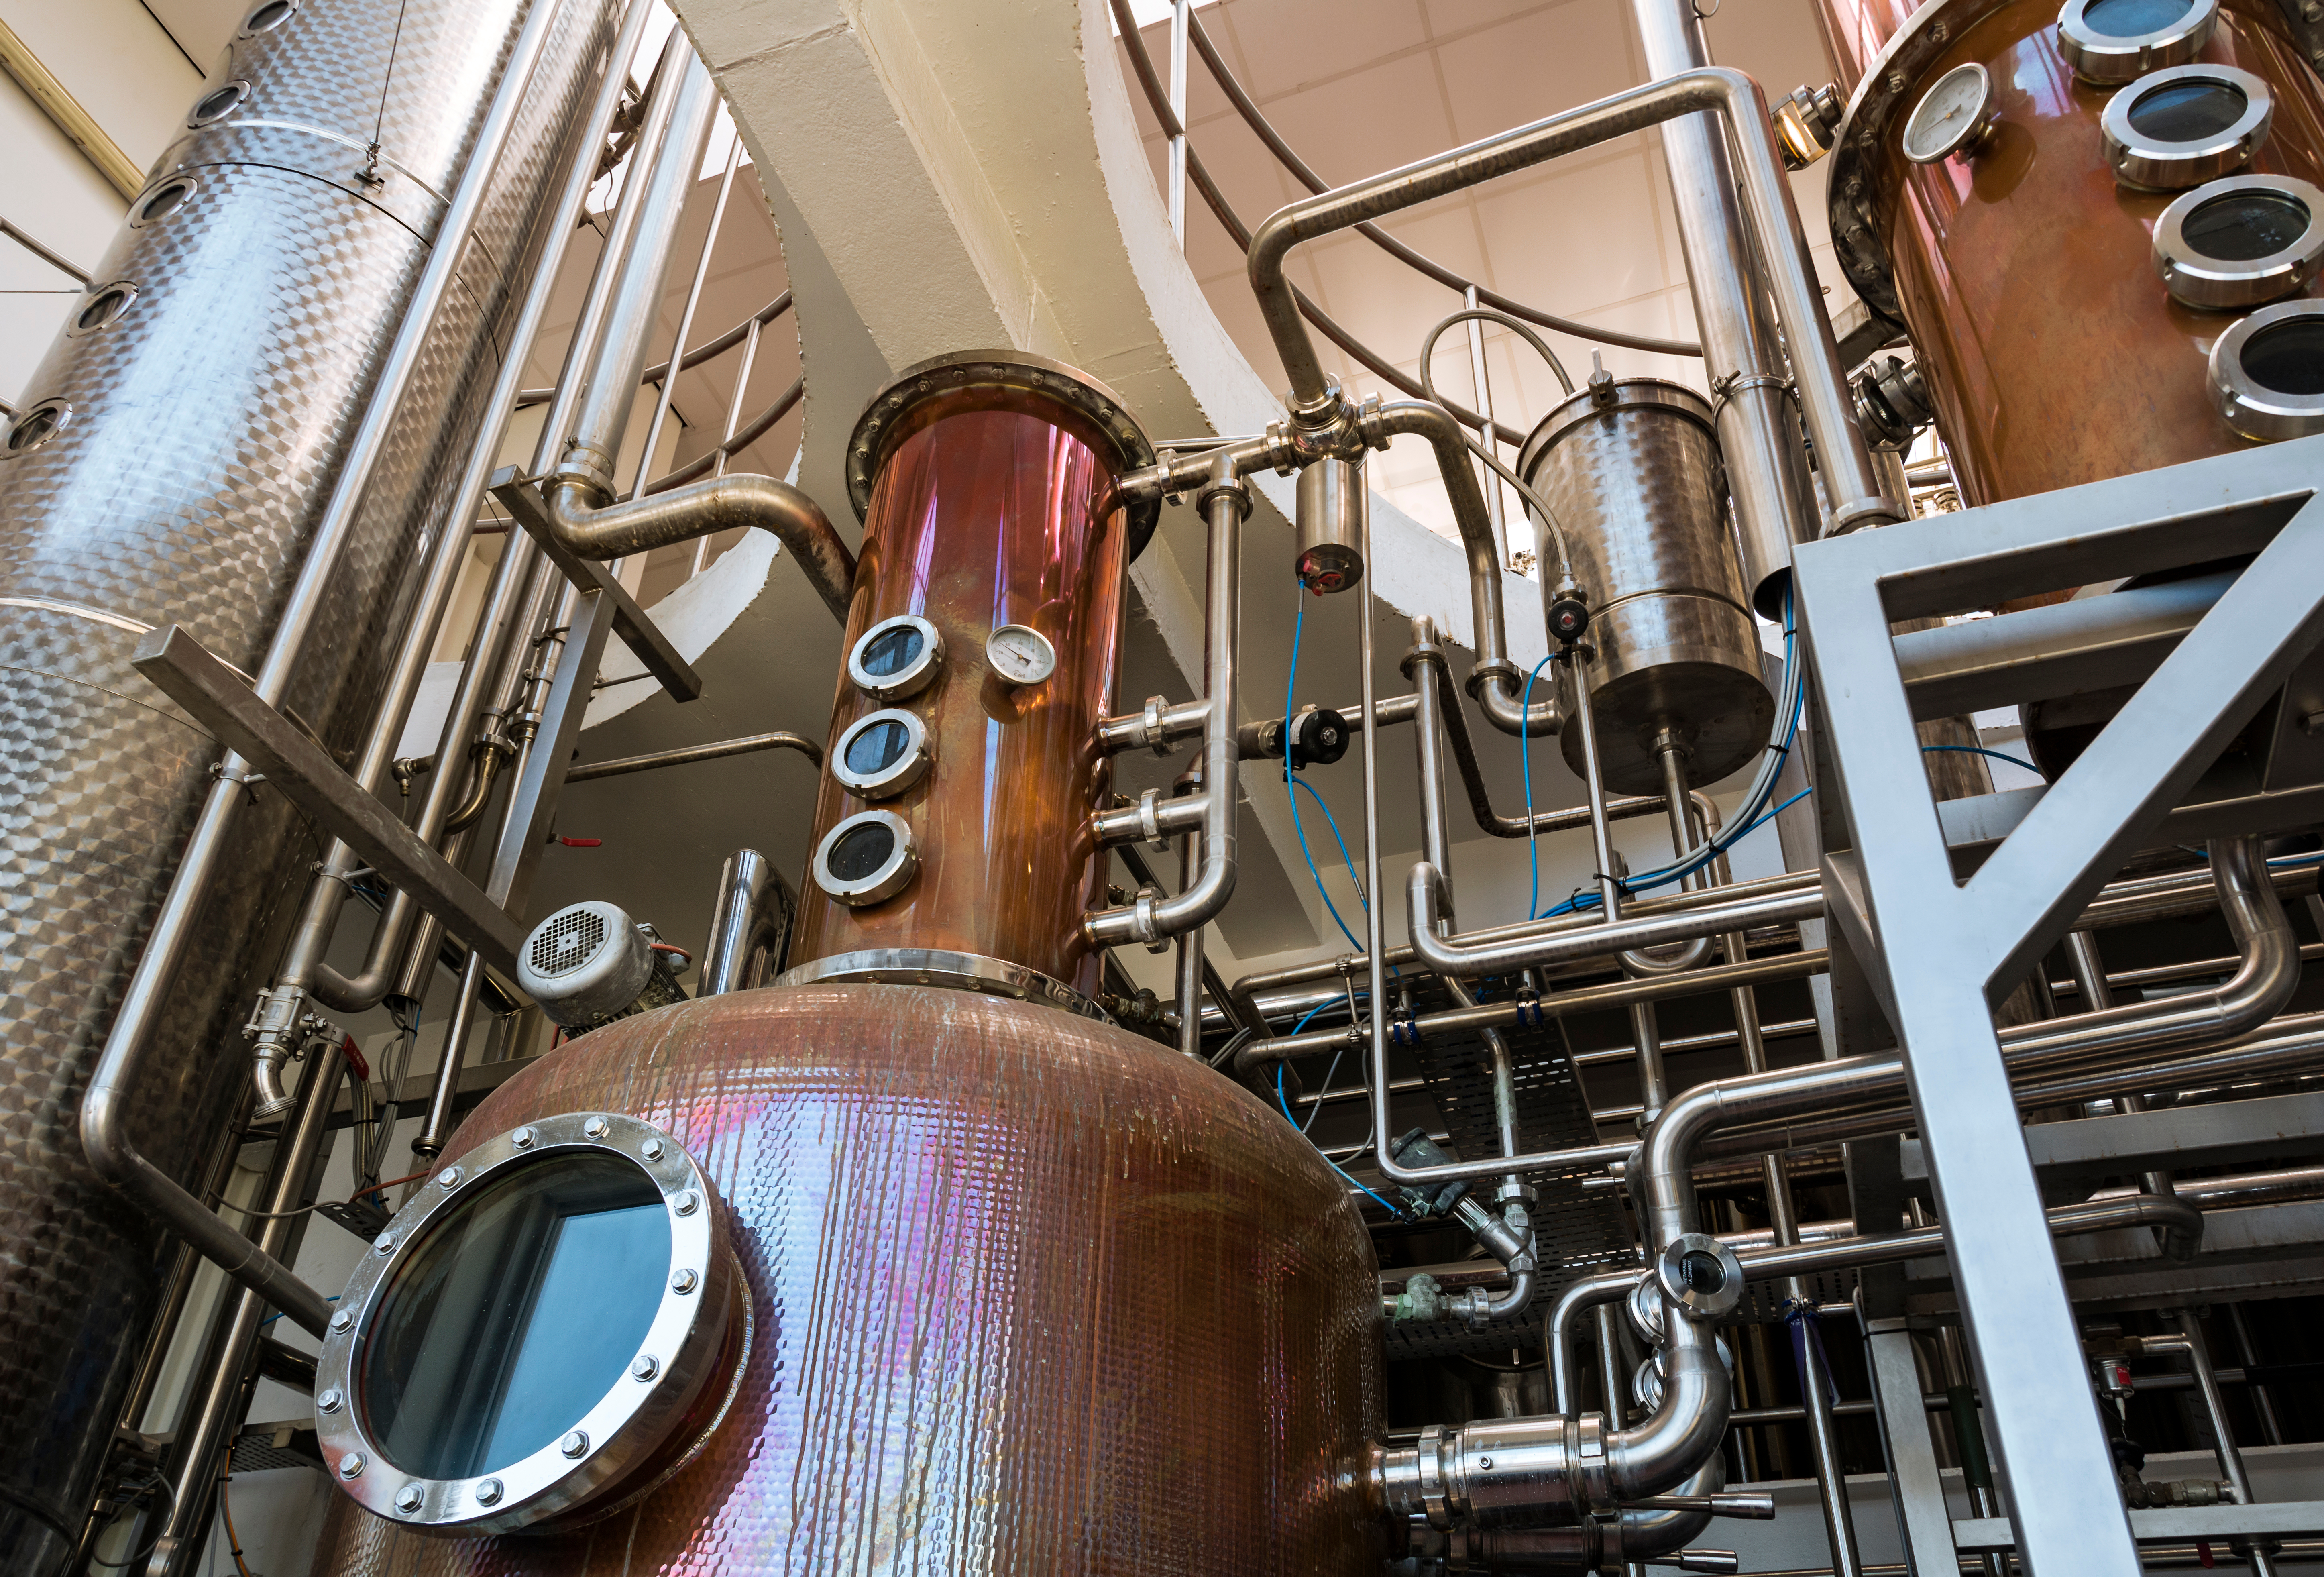 Interior,Of,Distillery,For,Manufacture,Of,Vodka,And,Gin